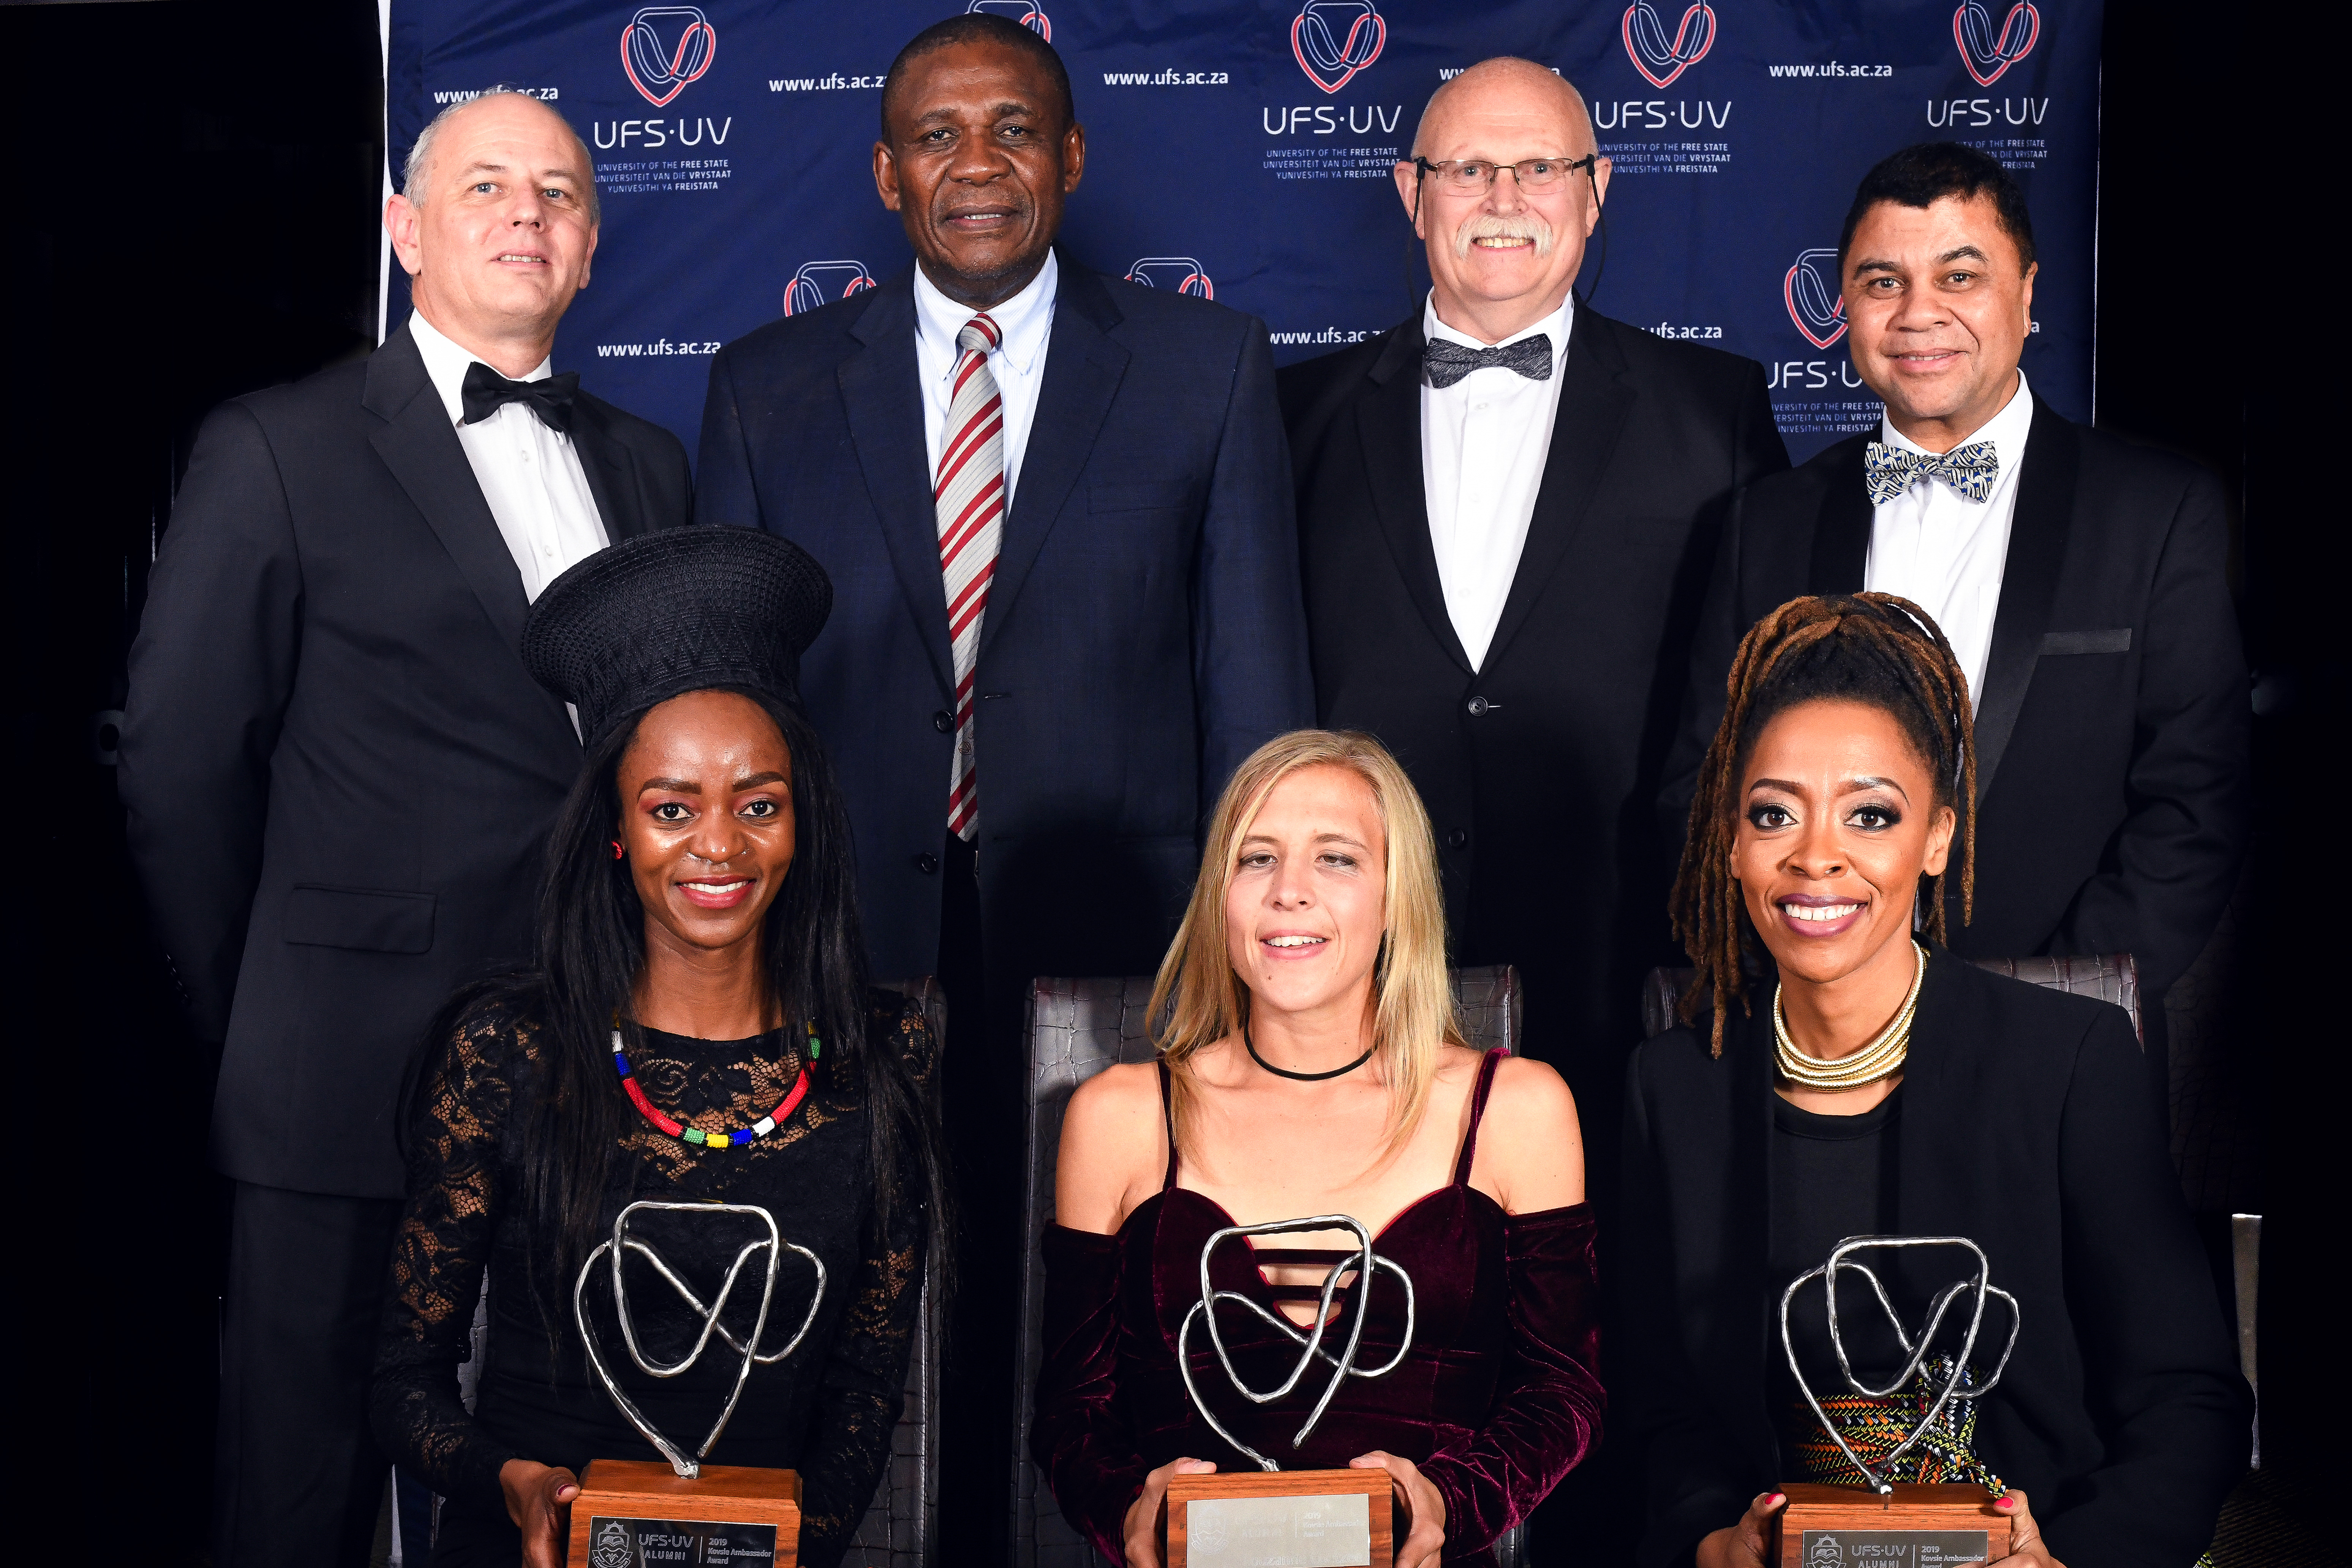 Front from left;  Kesa Molotsane, Louzanne Coetzee; Angie Khumalo (back from left); Dr Piter du Toit; Dr Khotso Mokhele; Mr Willem Louw and Prof Francis Petersen